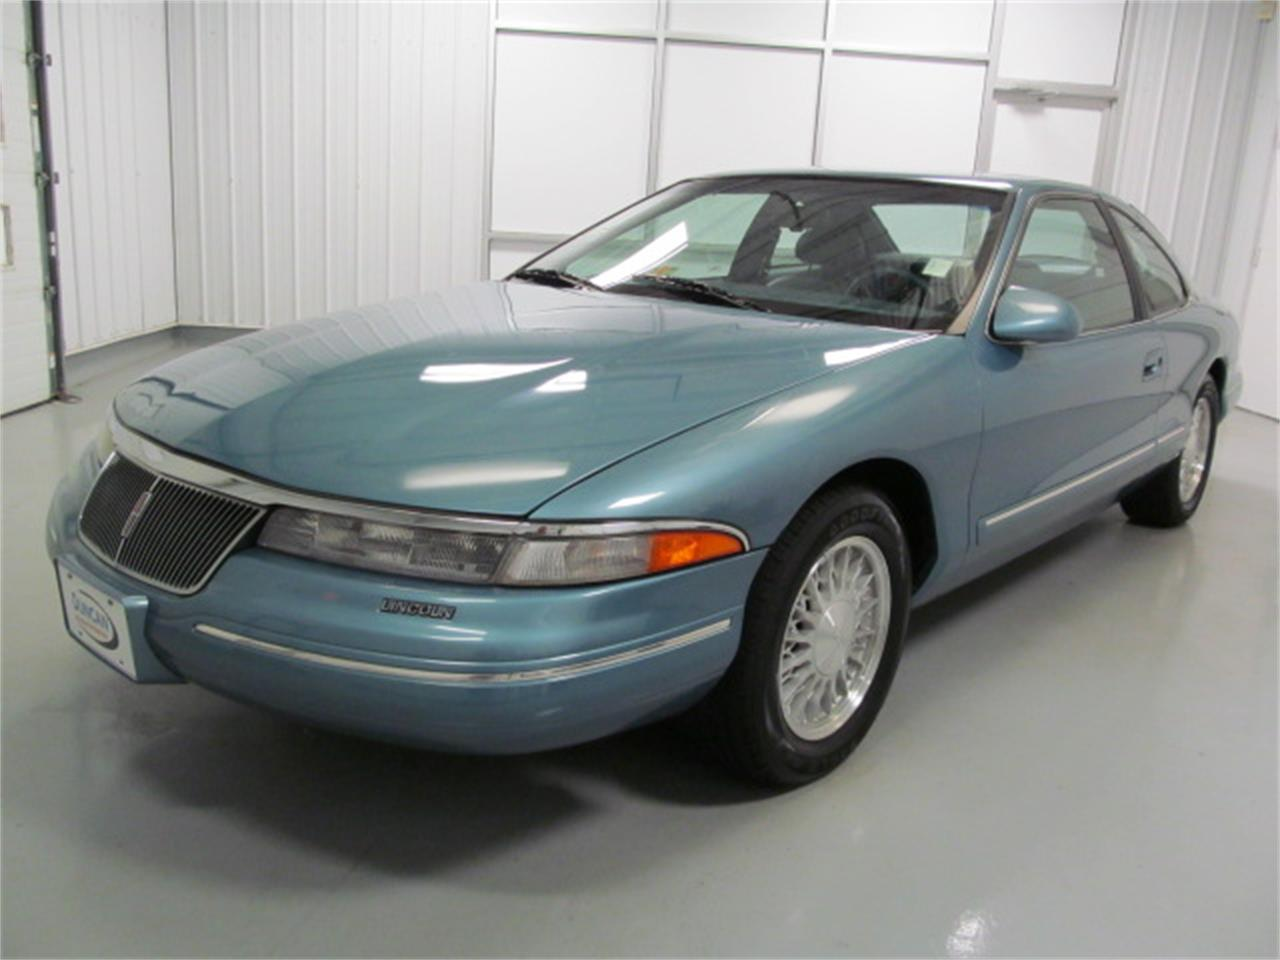 Large Picture of 1993 Lincoln Mark VIII located in Christiansburg Virginia - $9,900.00 Offered by Duncan Imports & Classic Cars - JL9Z